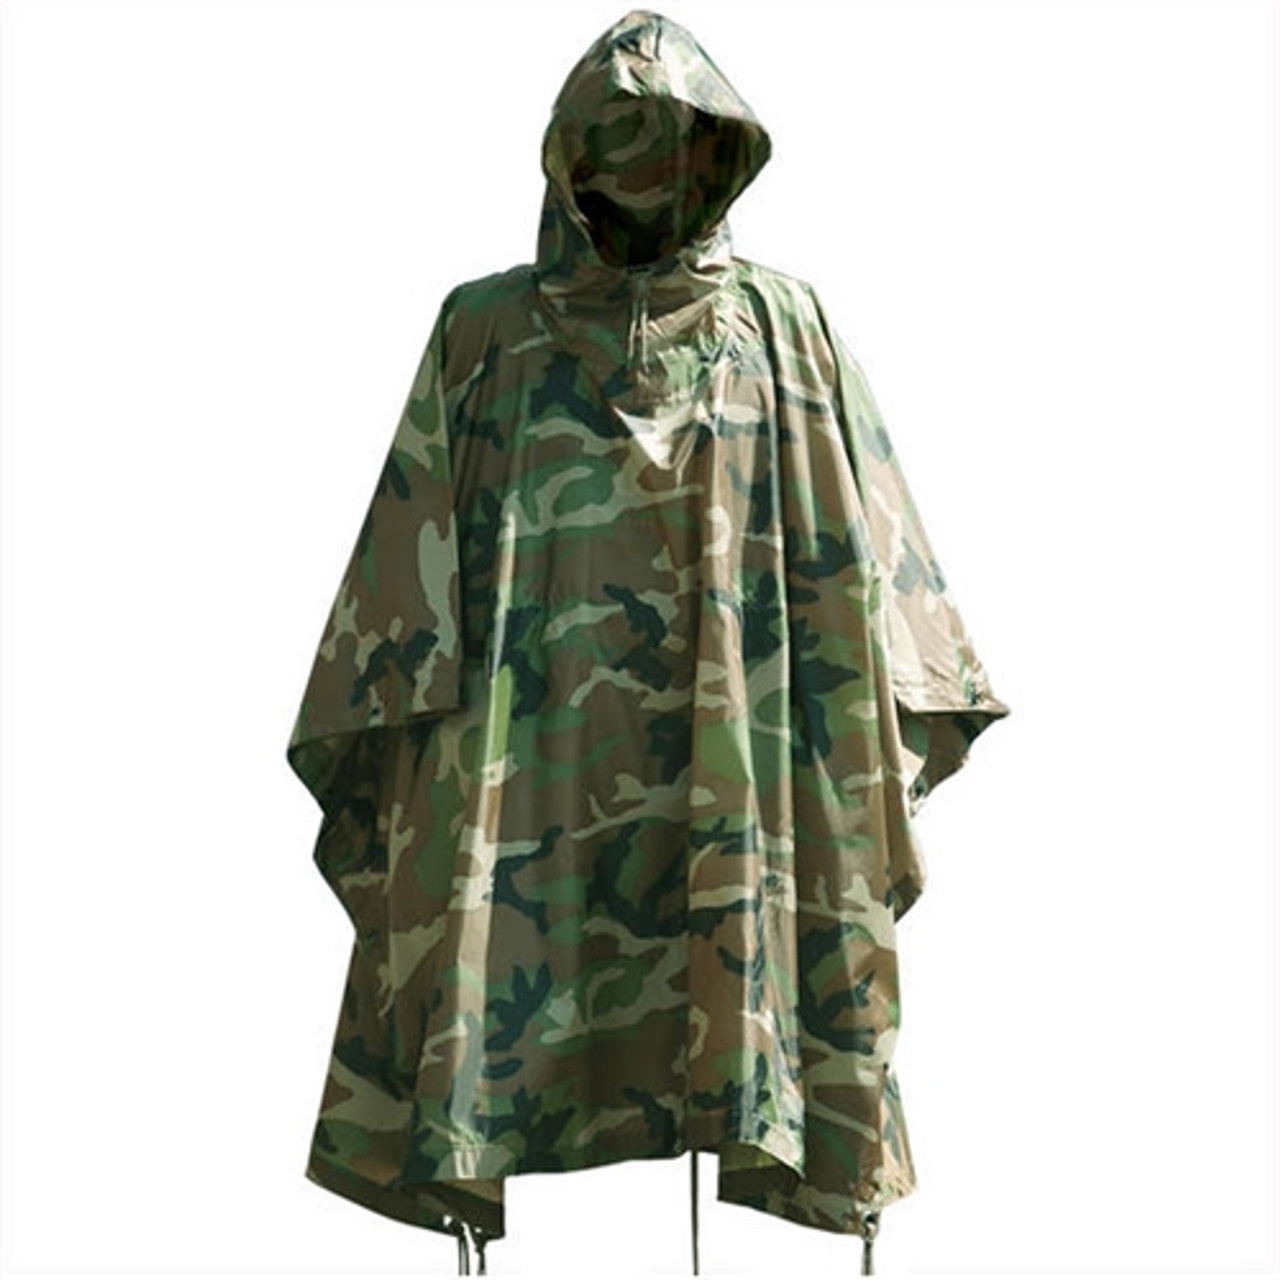 Mil-Tec Woodland Camo Wet Weather Poncho - Rip Stop from Hessen Antique